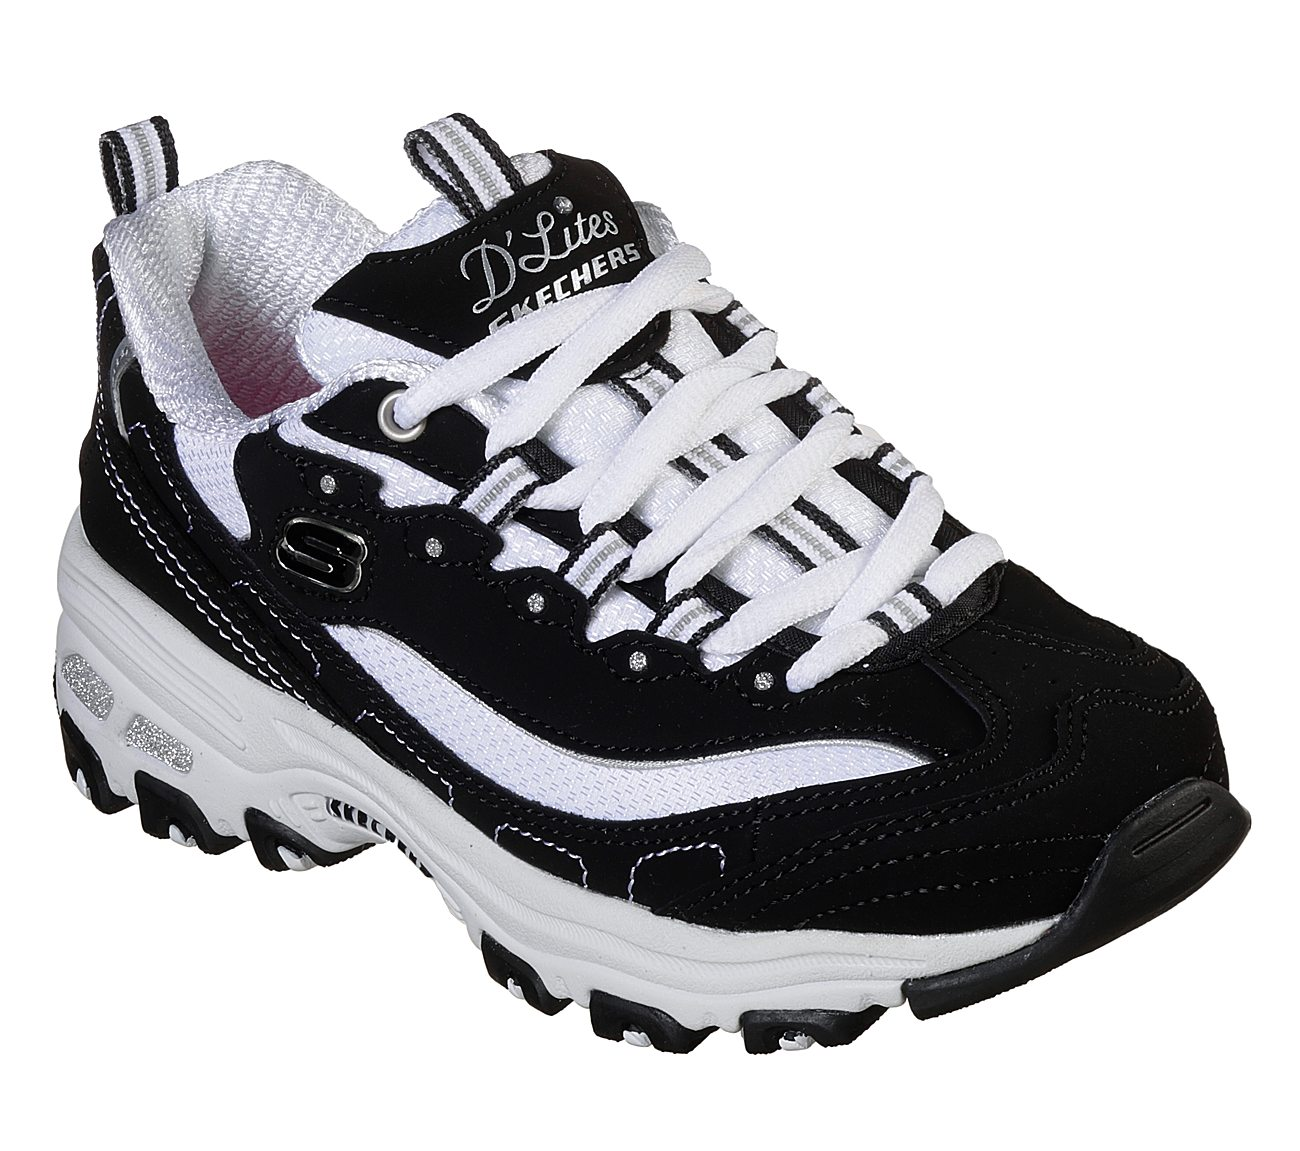 skechers d lites biggest fan sneakers